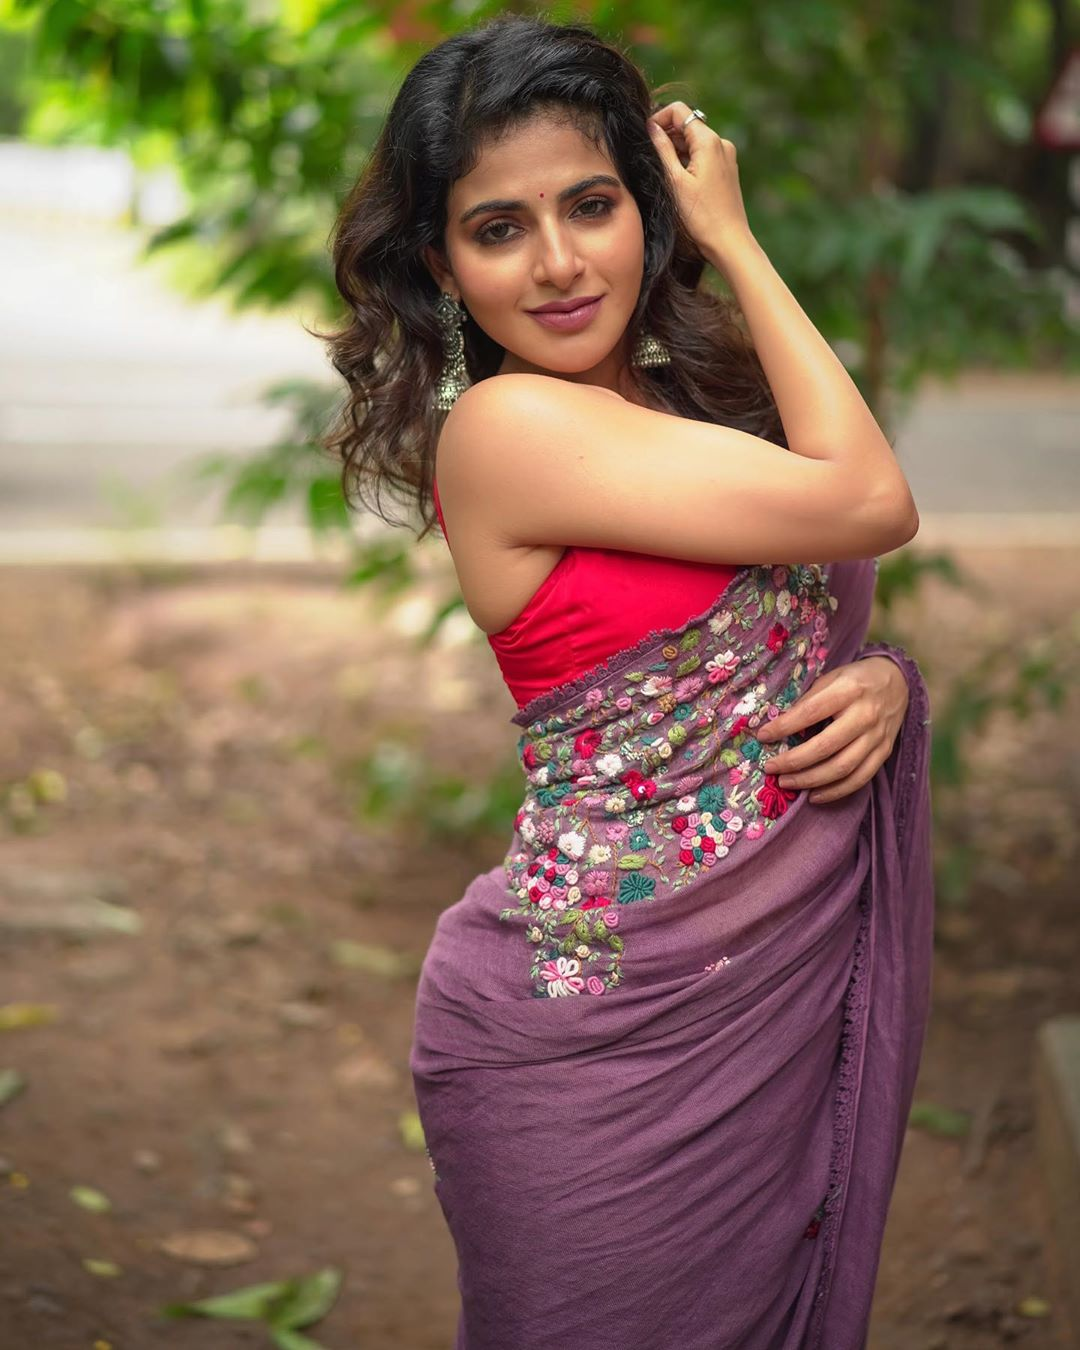 Actress Aishwarya Menon Hot Saree Photoshoot Latest Indian Hollywood Movies Updates Branding Online And Actress Gallery